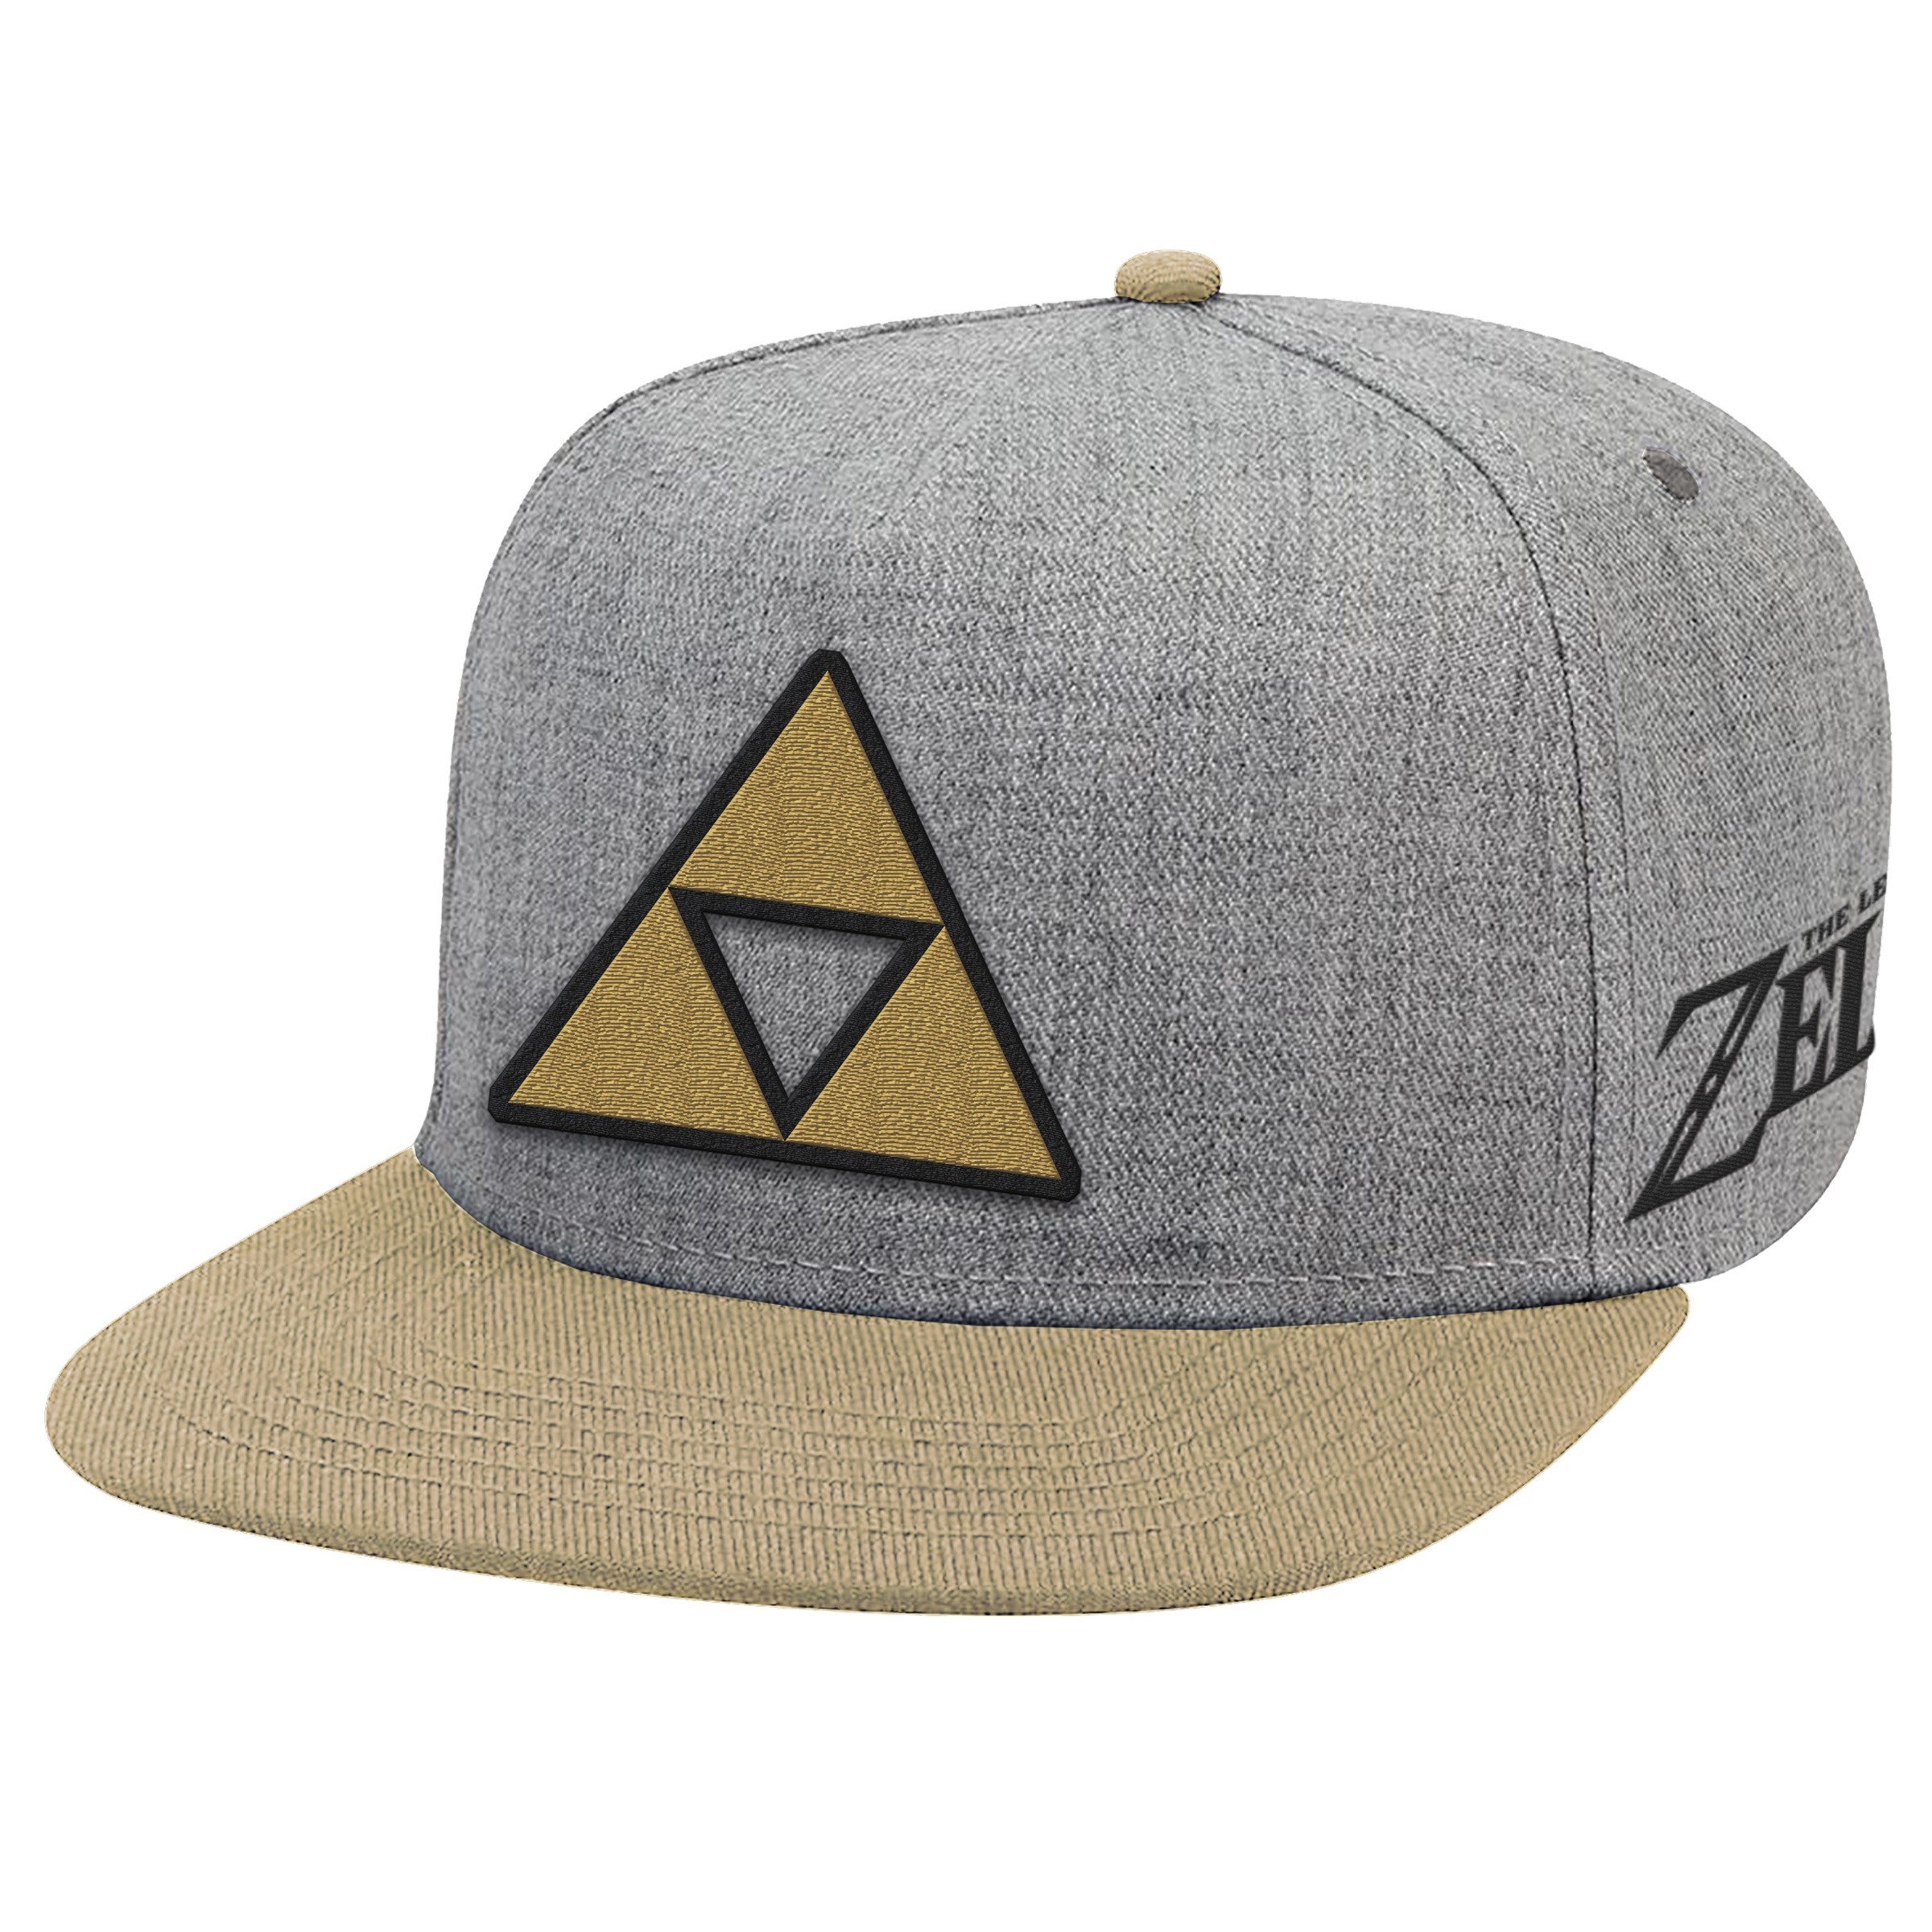 "The Legend of Zelda ""Triforce Patch"" Flat Bill Hat - Officially Licensed by Nintendo"